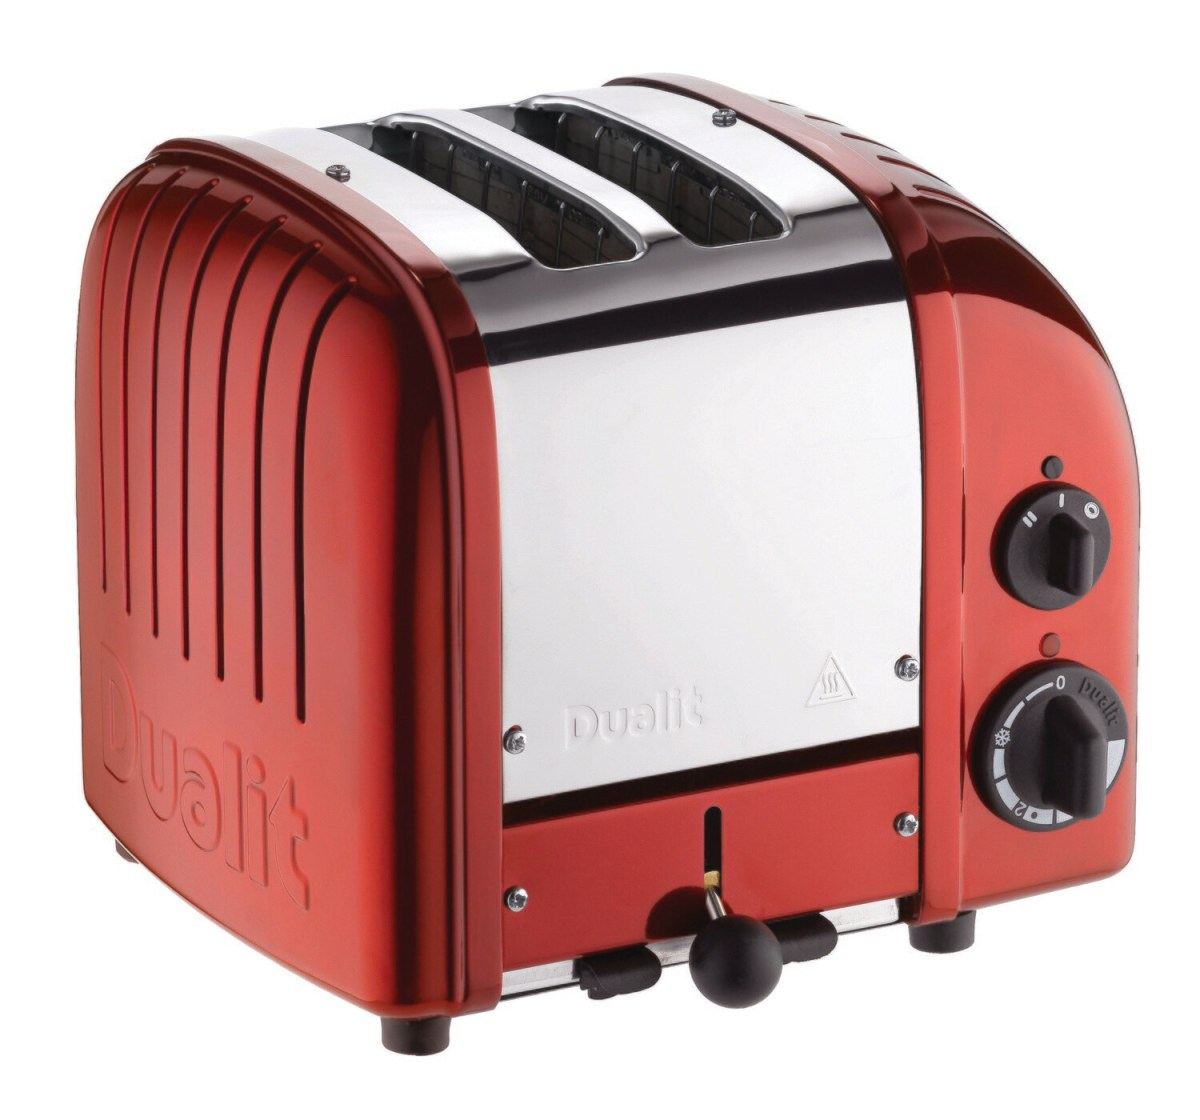 Dualit Classic NewGen 2-Slot Toaster - Candy Red